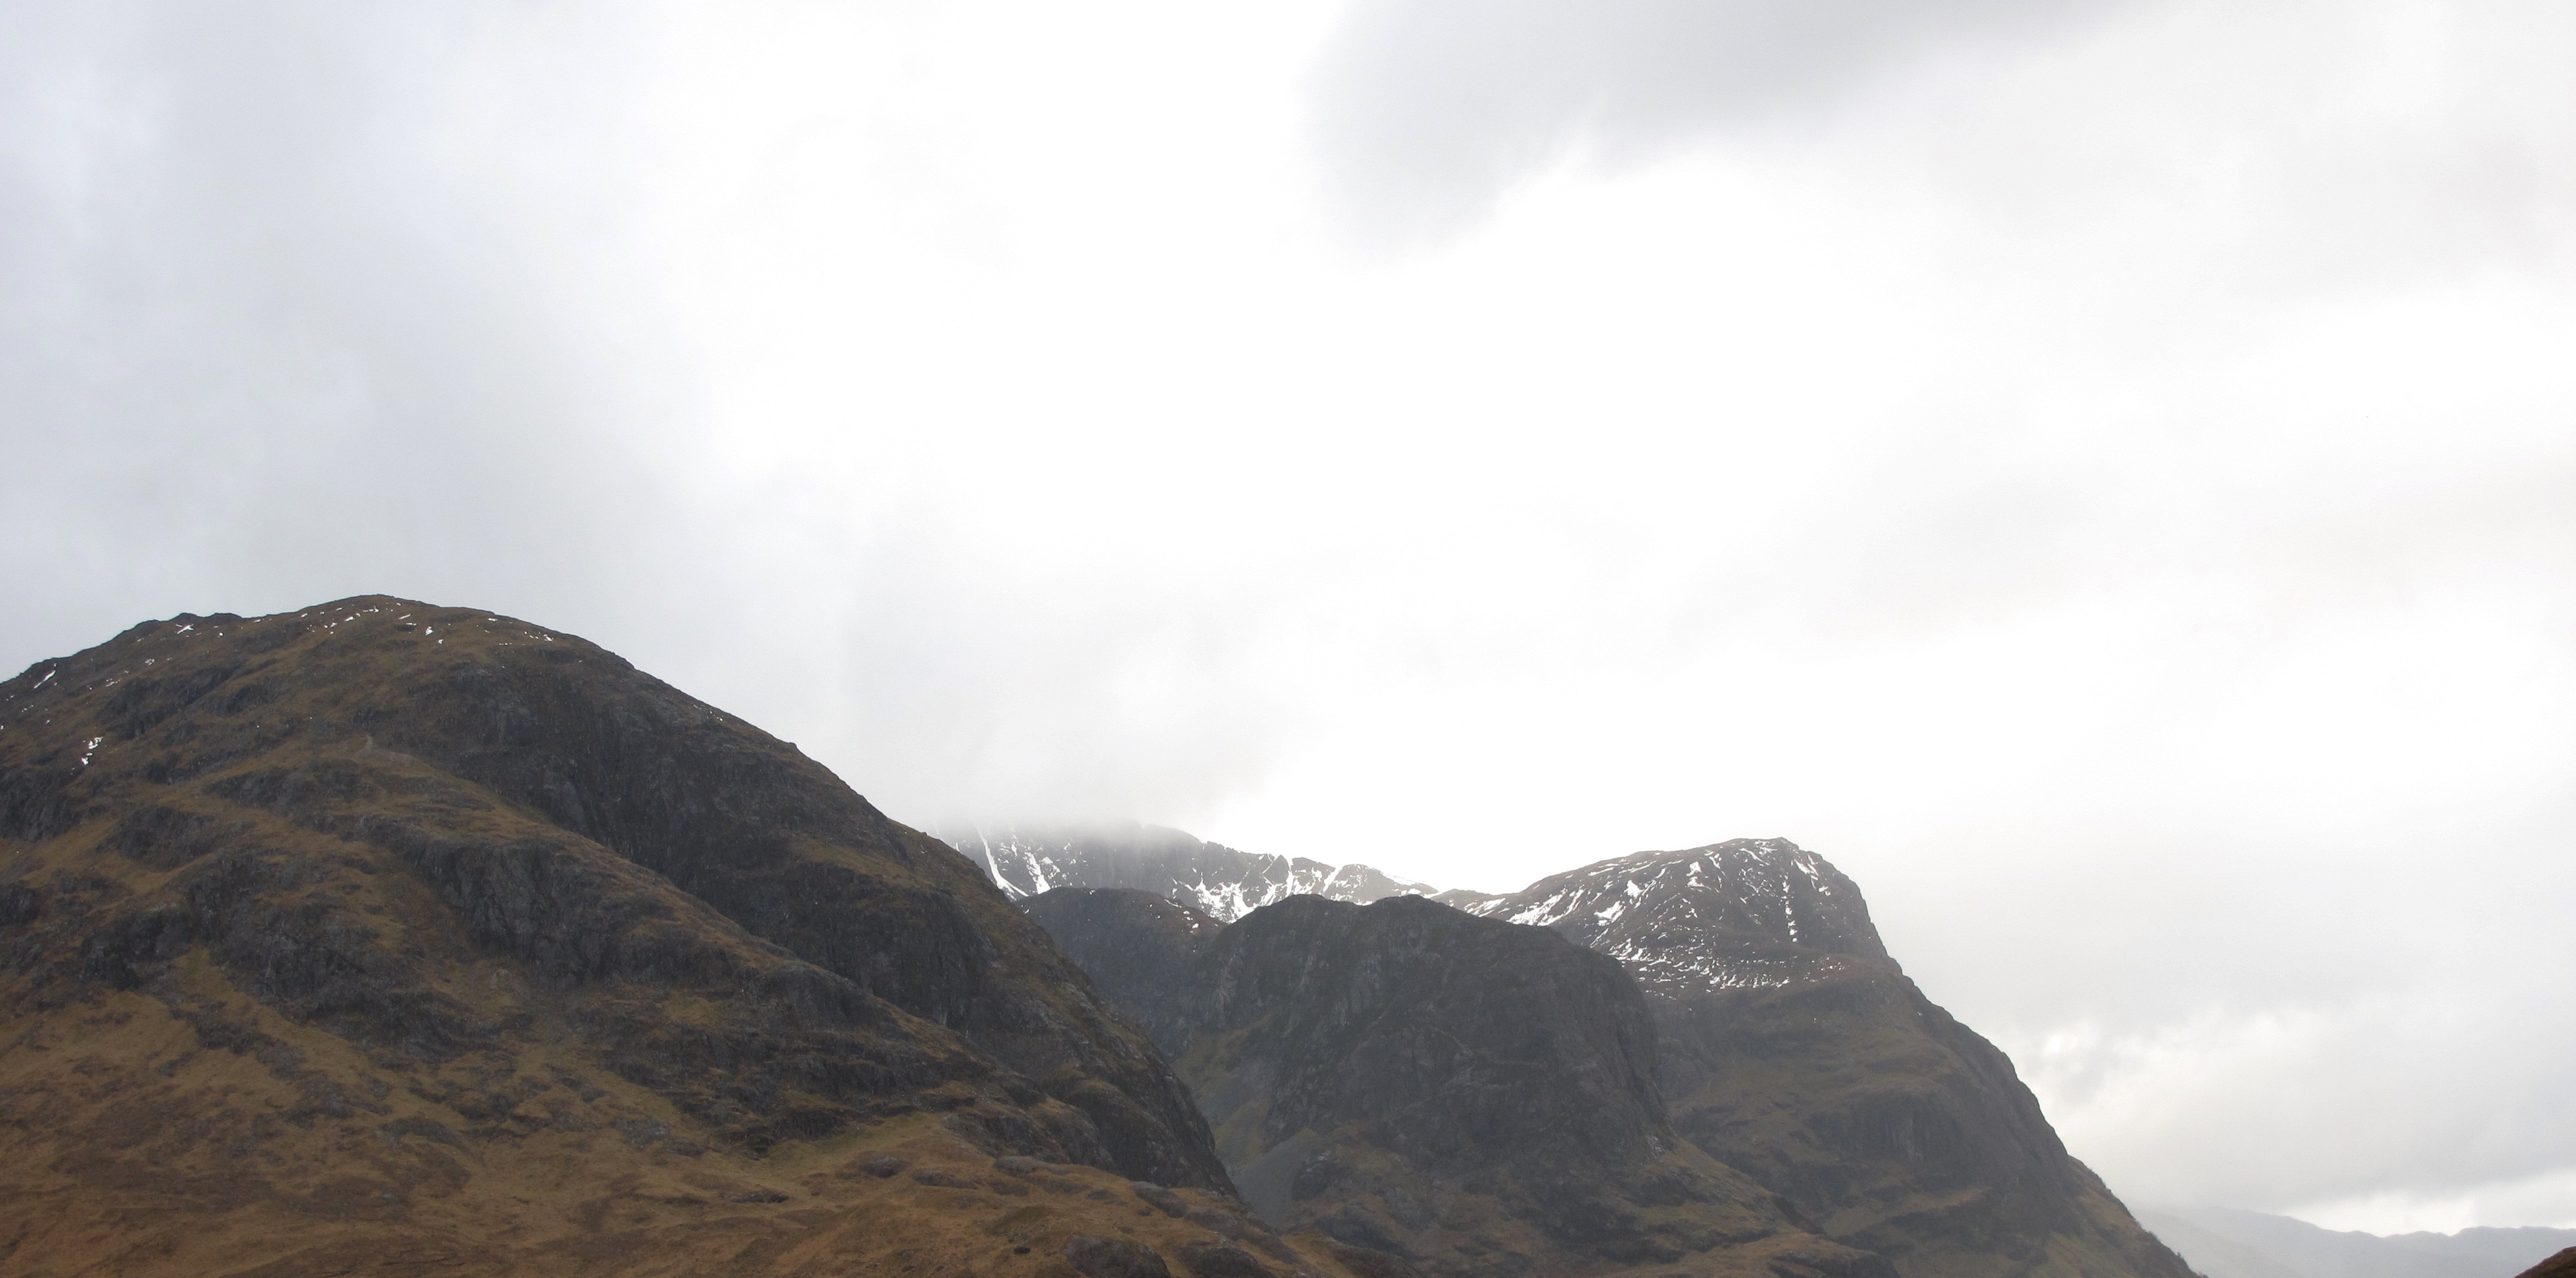 The 3 sisters of Glen Coe.